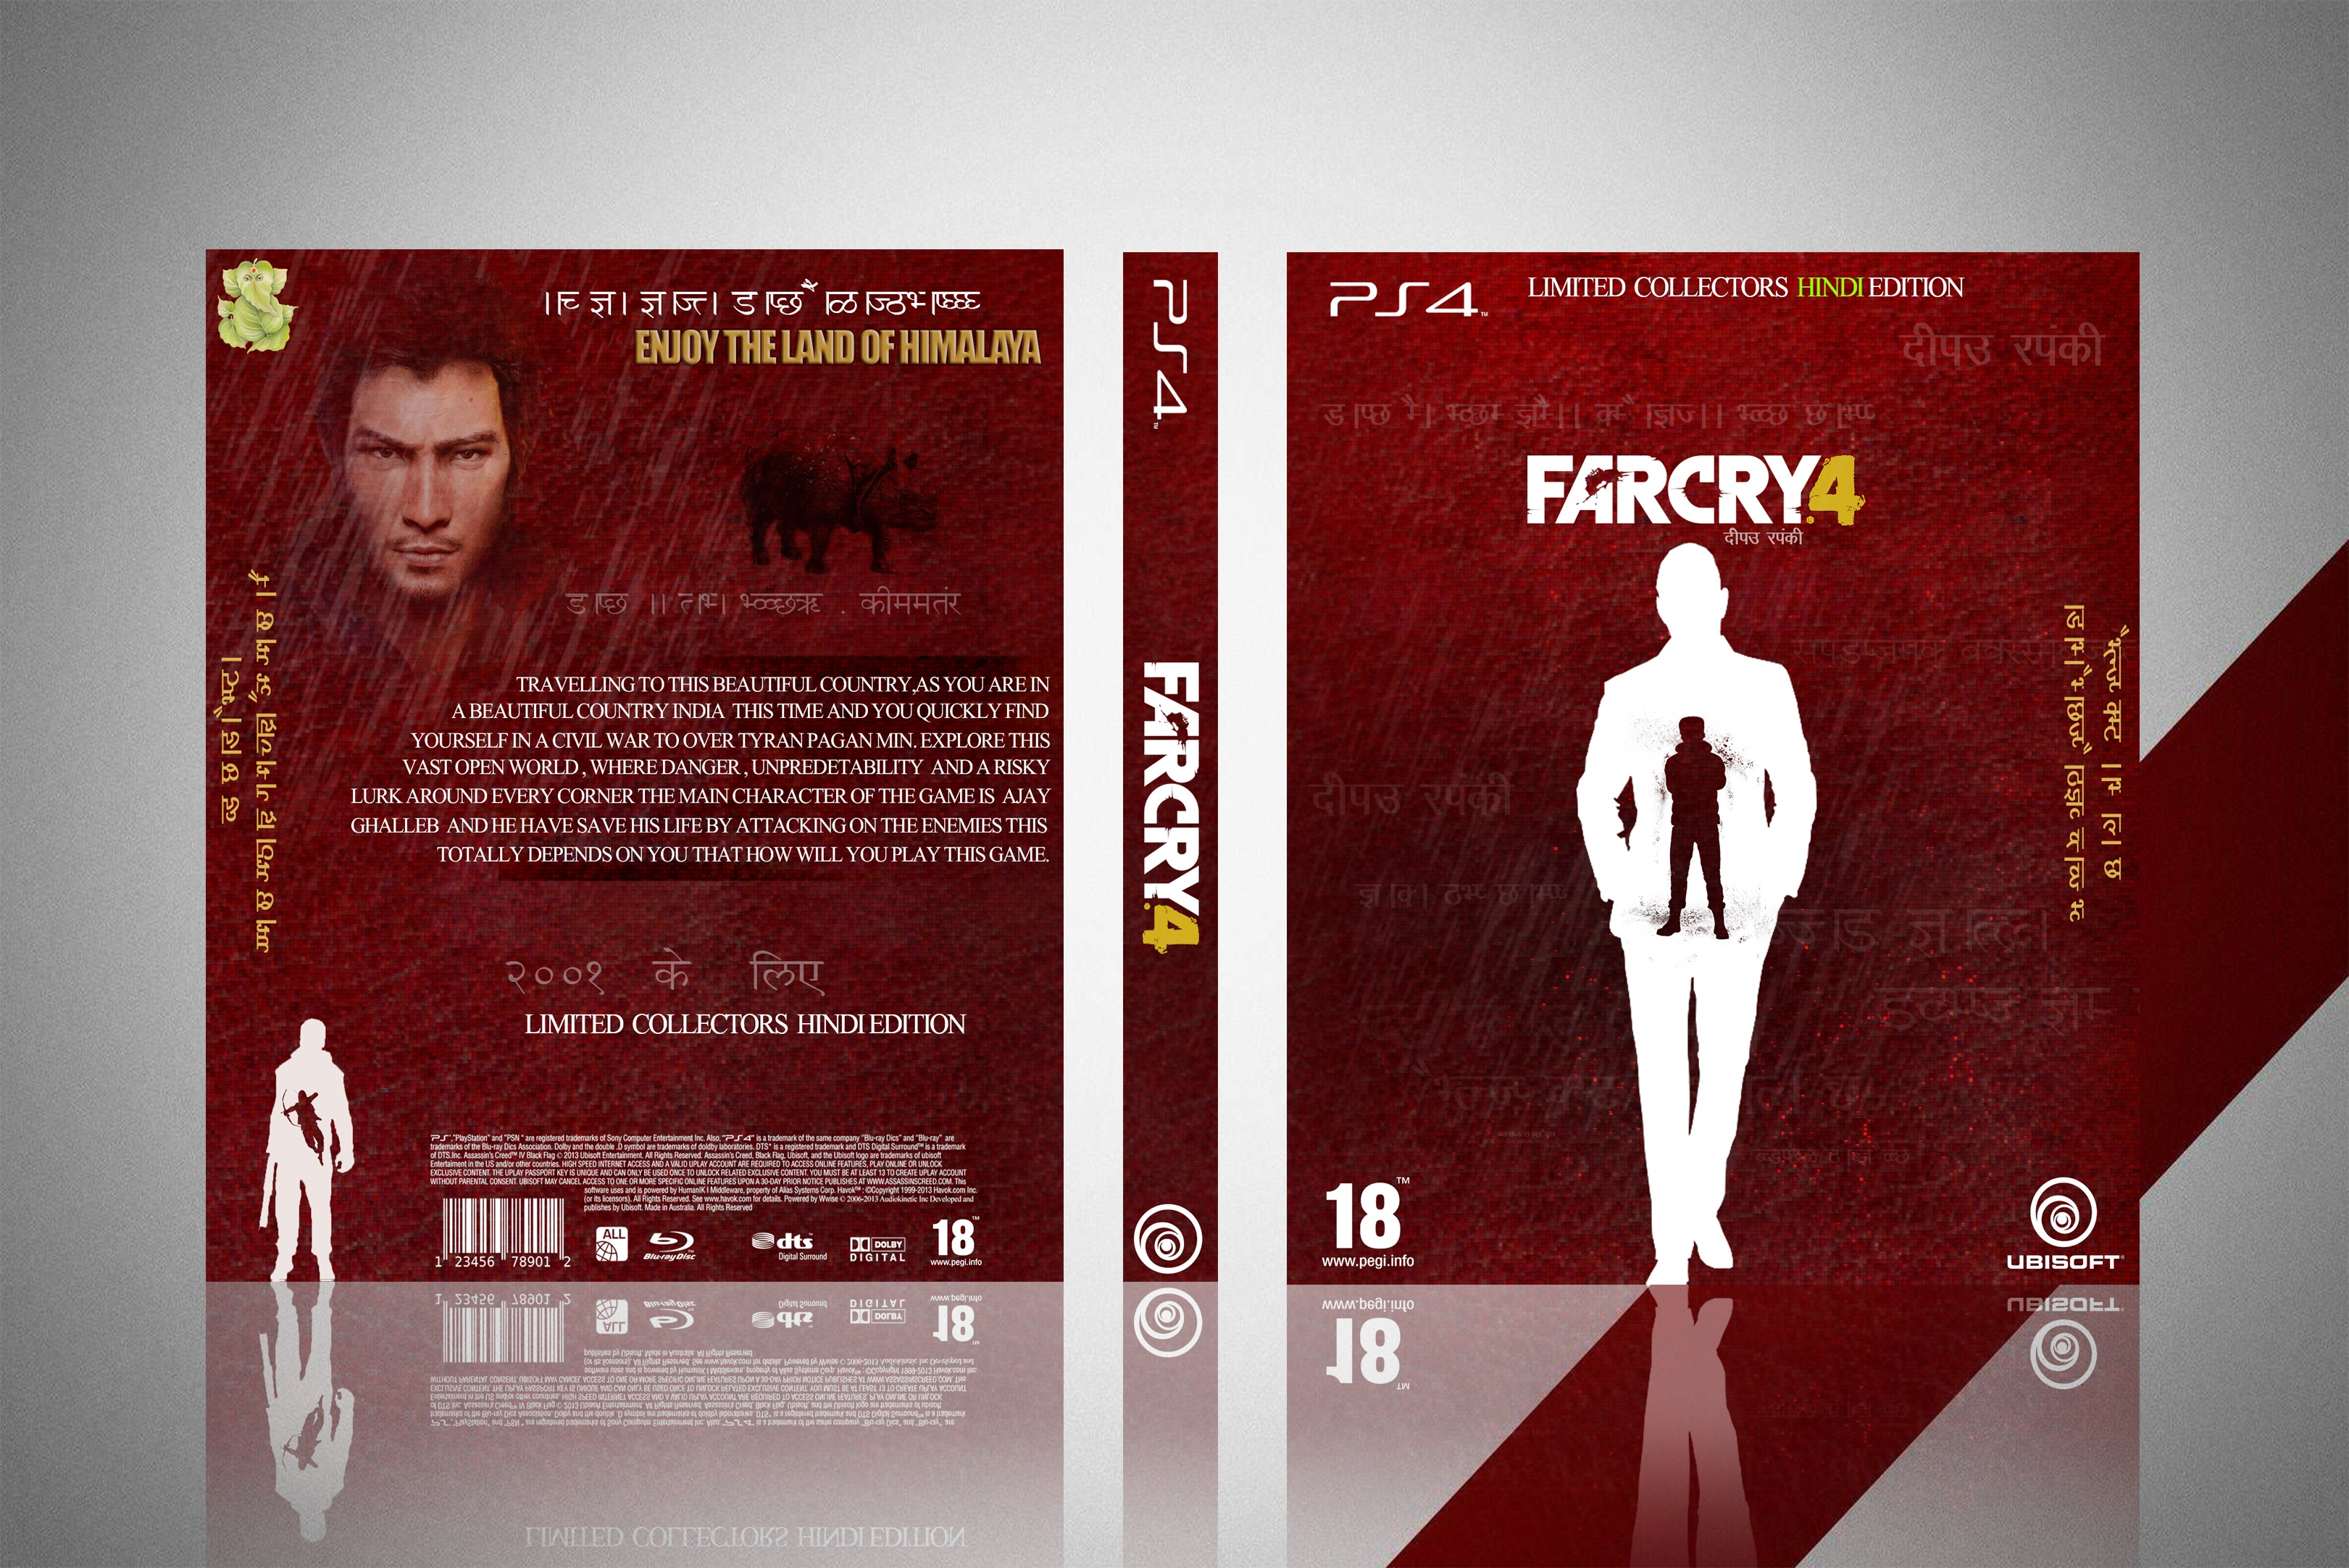 Far Cry 4 : Limited collectors HINDI Edition box cover